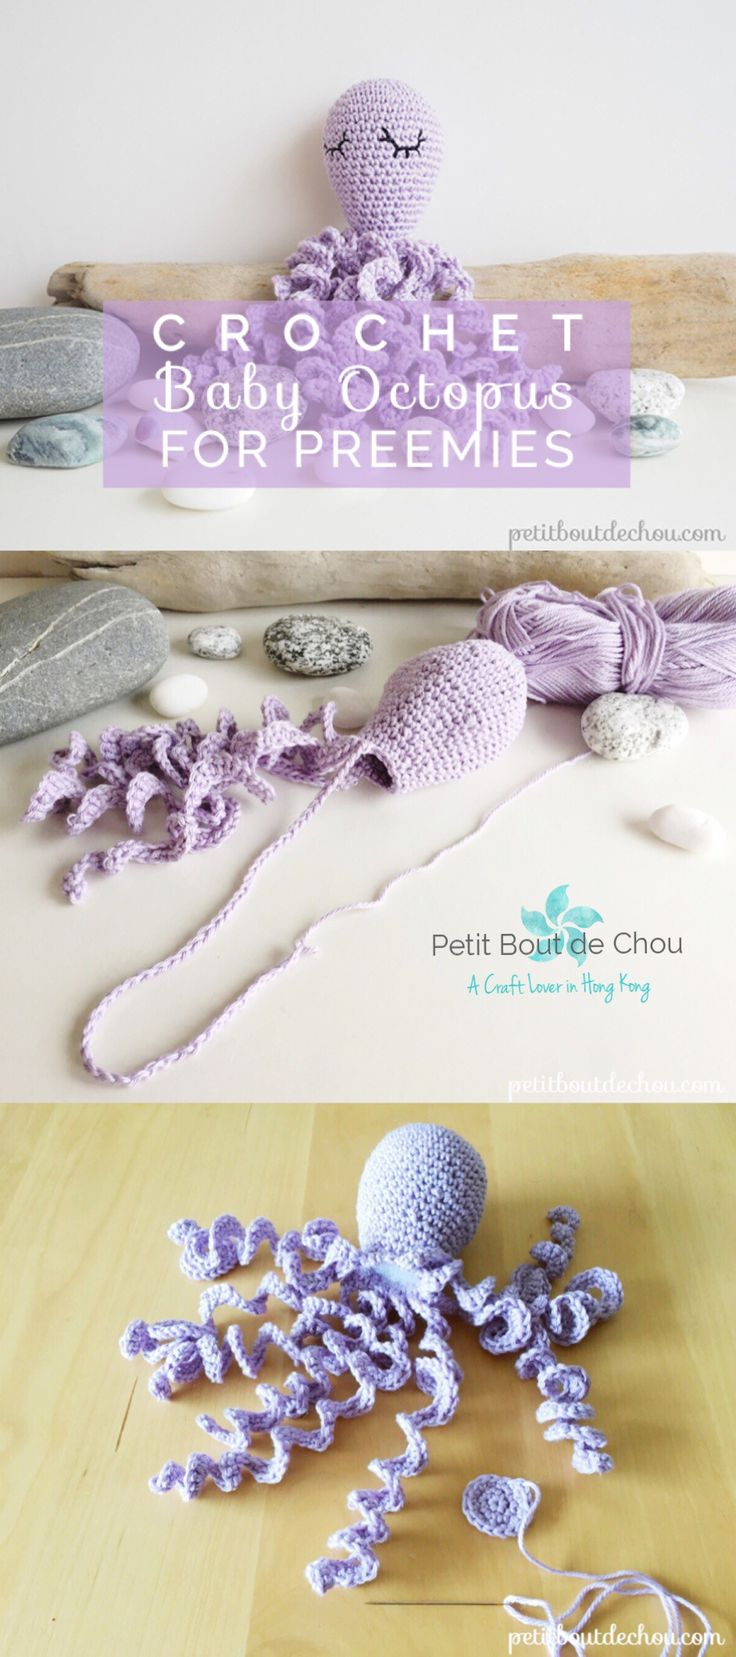 Have you already heard about these little crochet octopus for preemies? I have tried to gather here all useful links and information on that amazing project around the world.